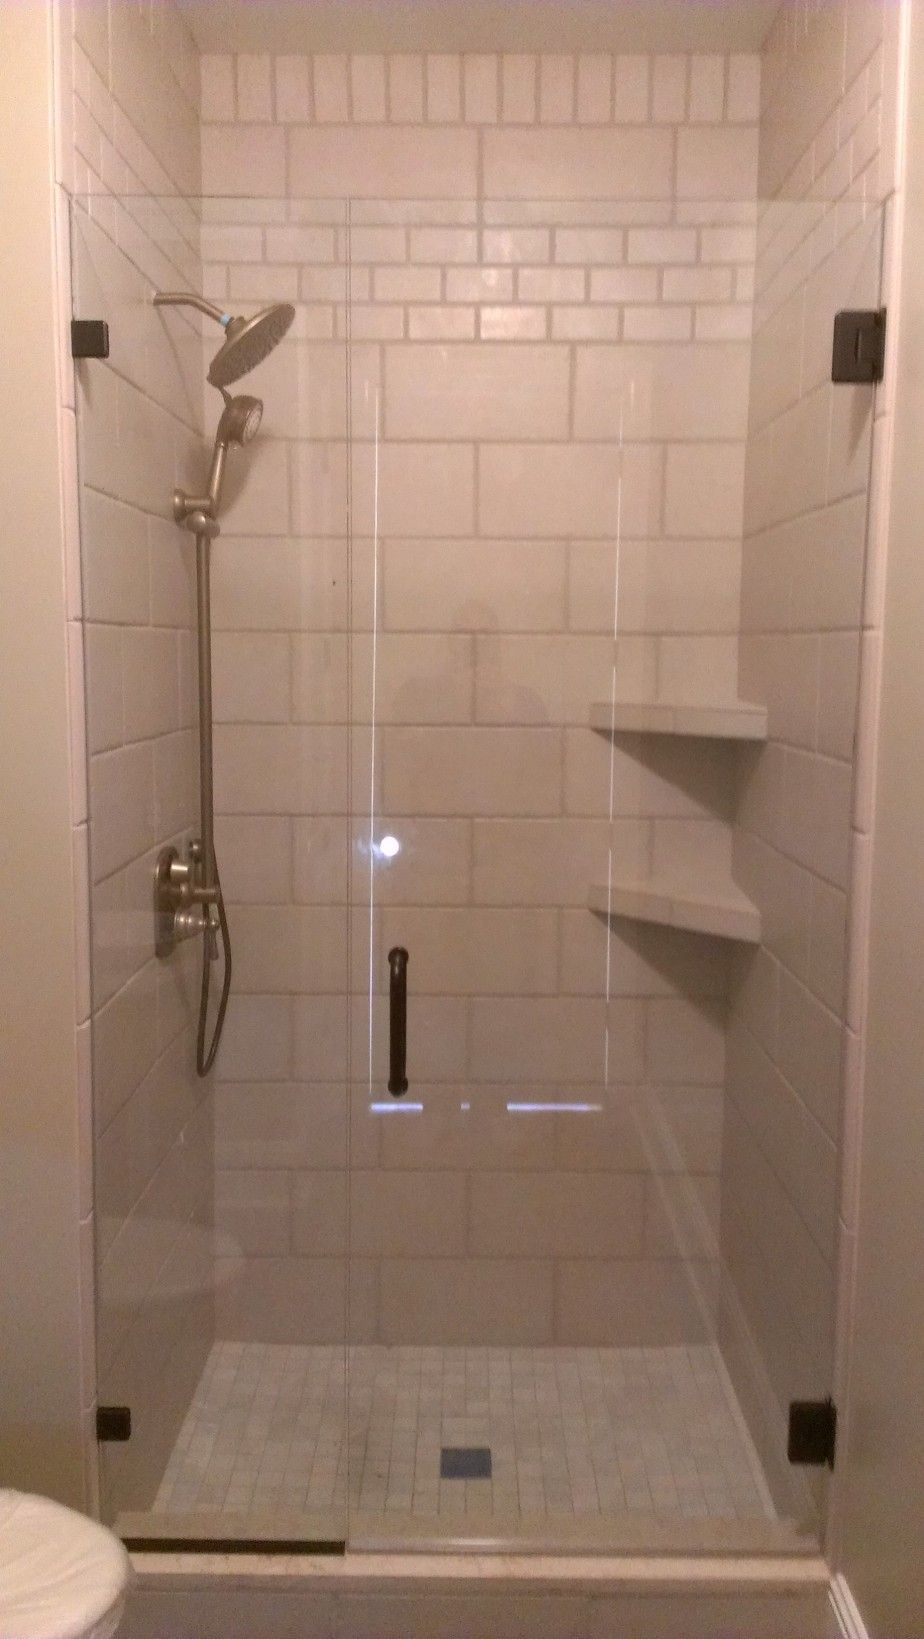 White Tile Shower Ideas Bathroom Sleek White Tiled Corner Showers With Diagonal Tile Pattern Corner Shower Shower Shelves Bathroom Remodel Small Shower